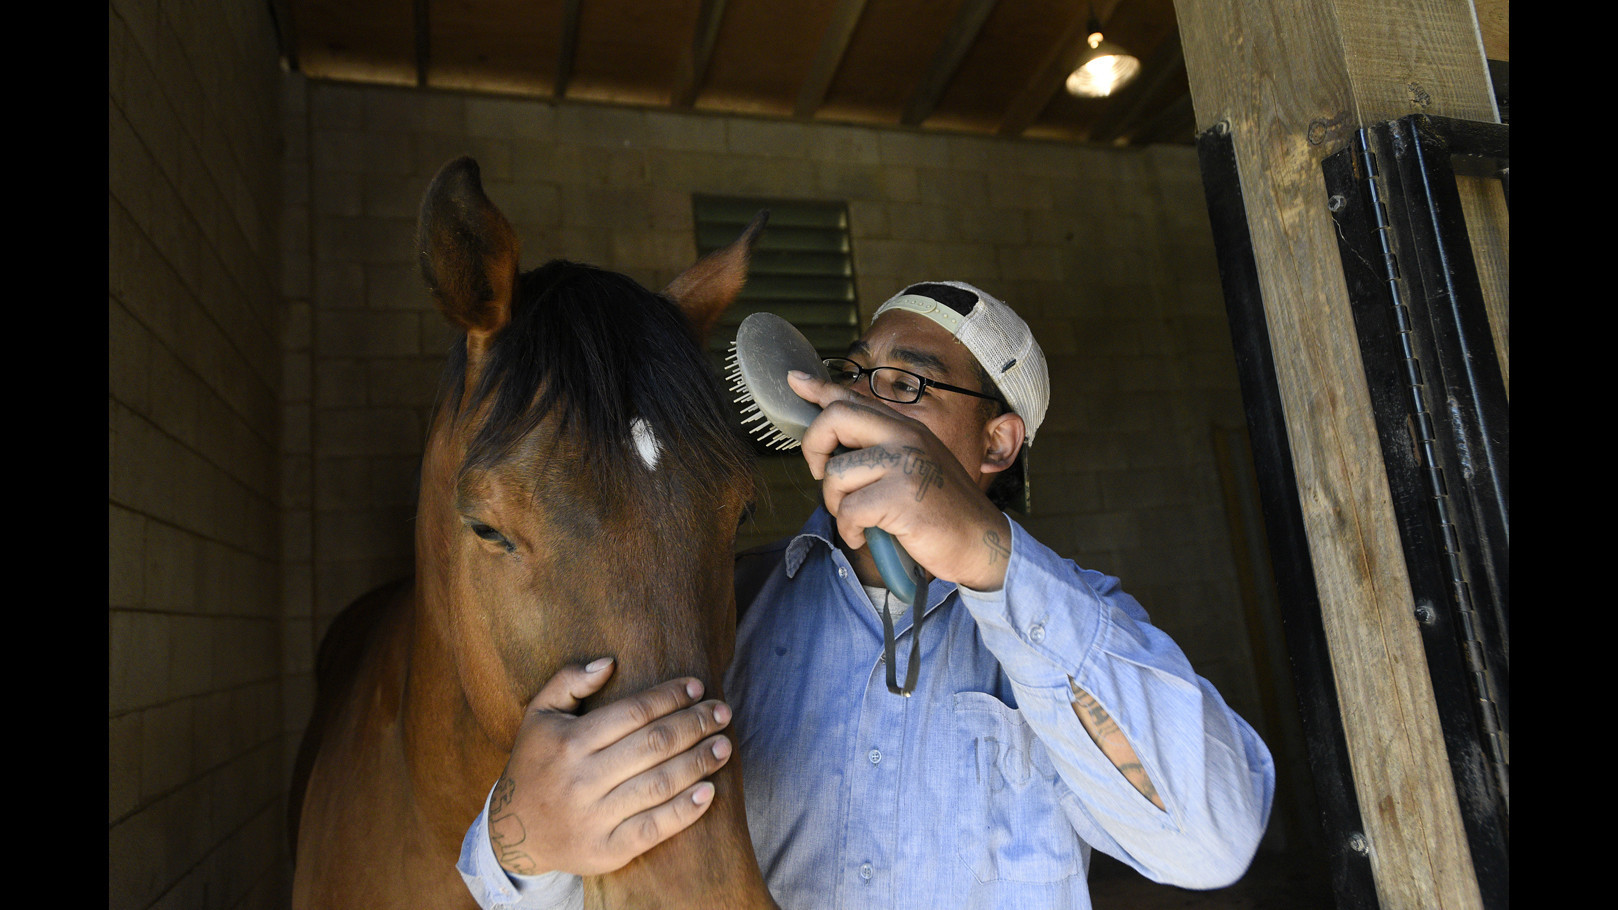 Second Chances: Horse farm offers inmates opportunity to learn job